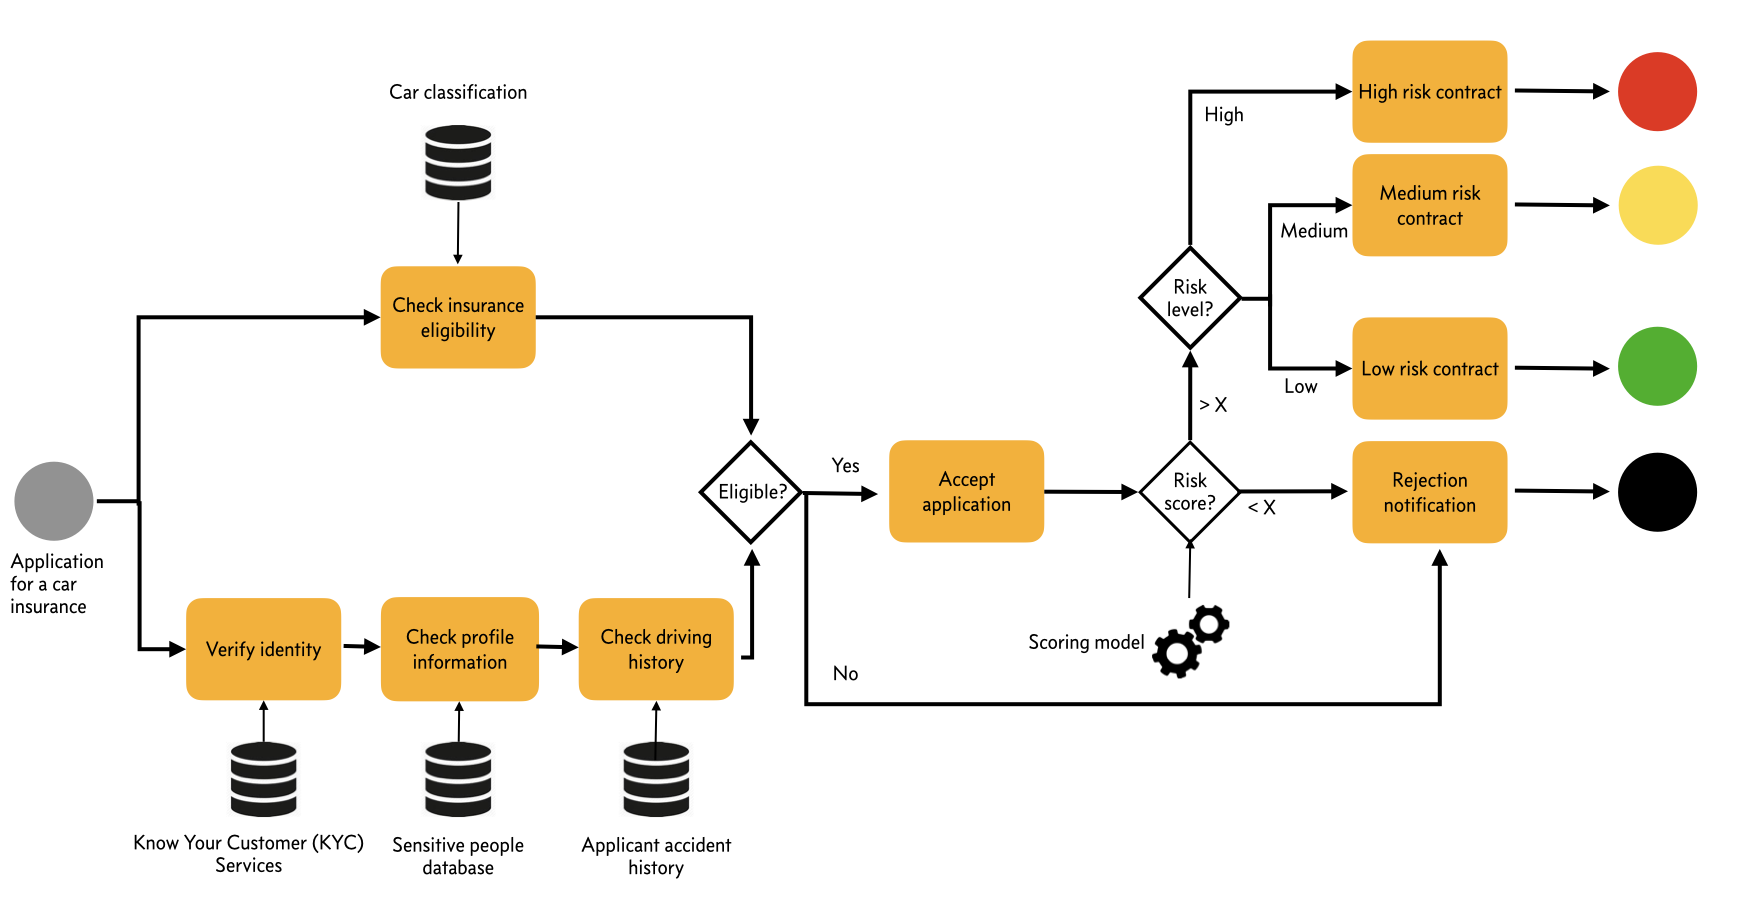 Figure 2: Simplified lifecycle of subscription to an insurance, showing both BPM and BDM